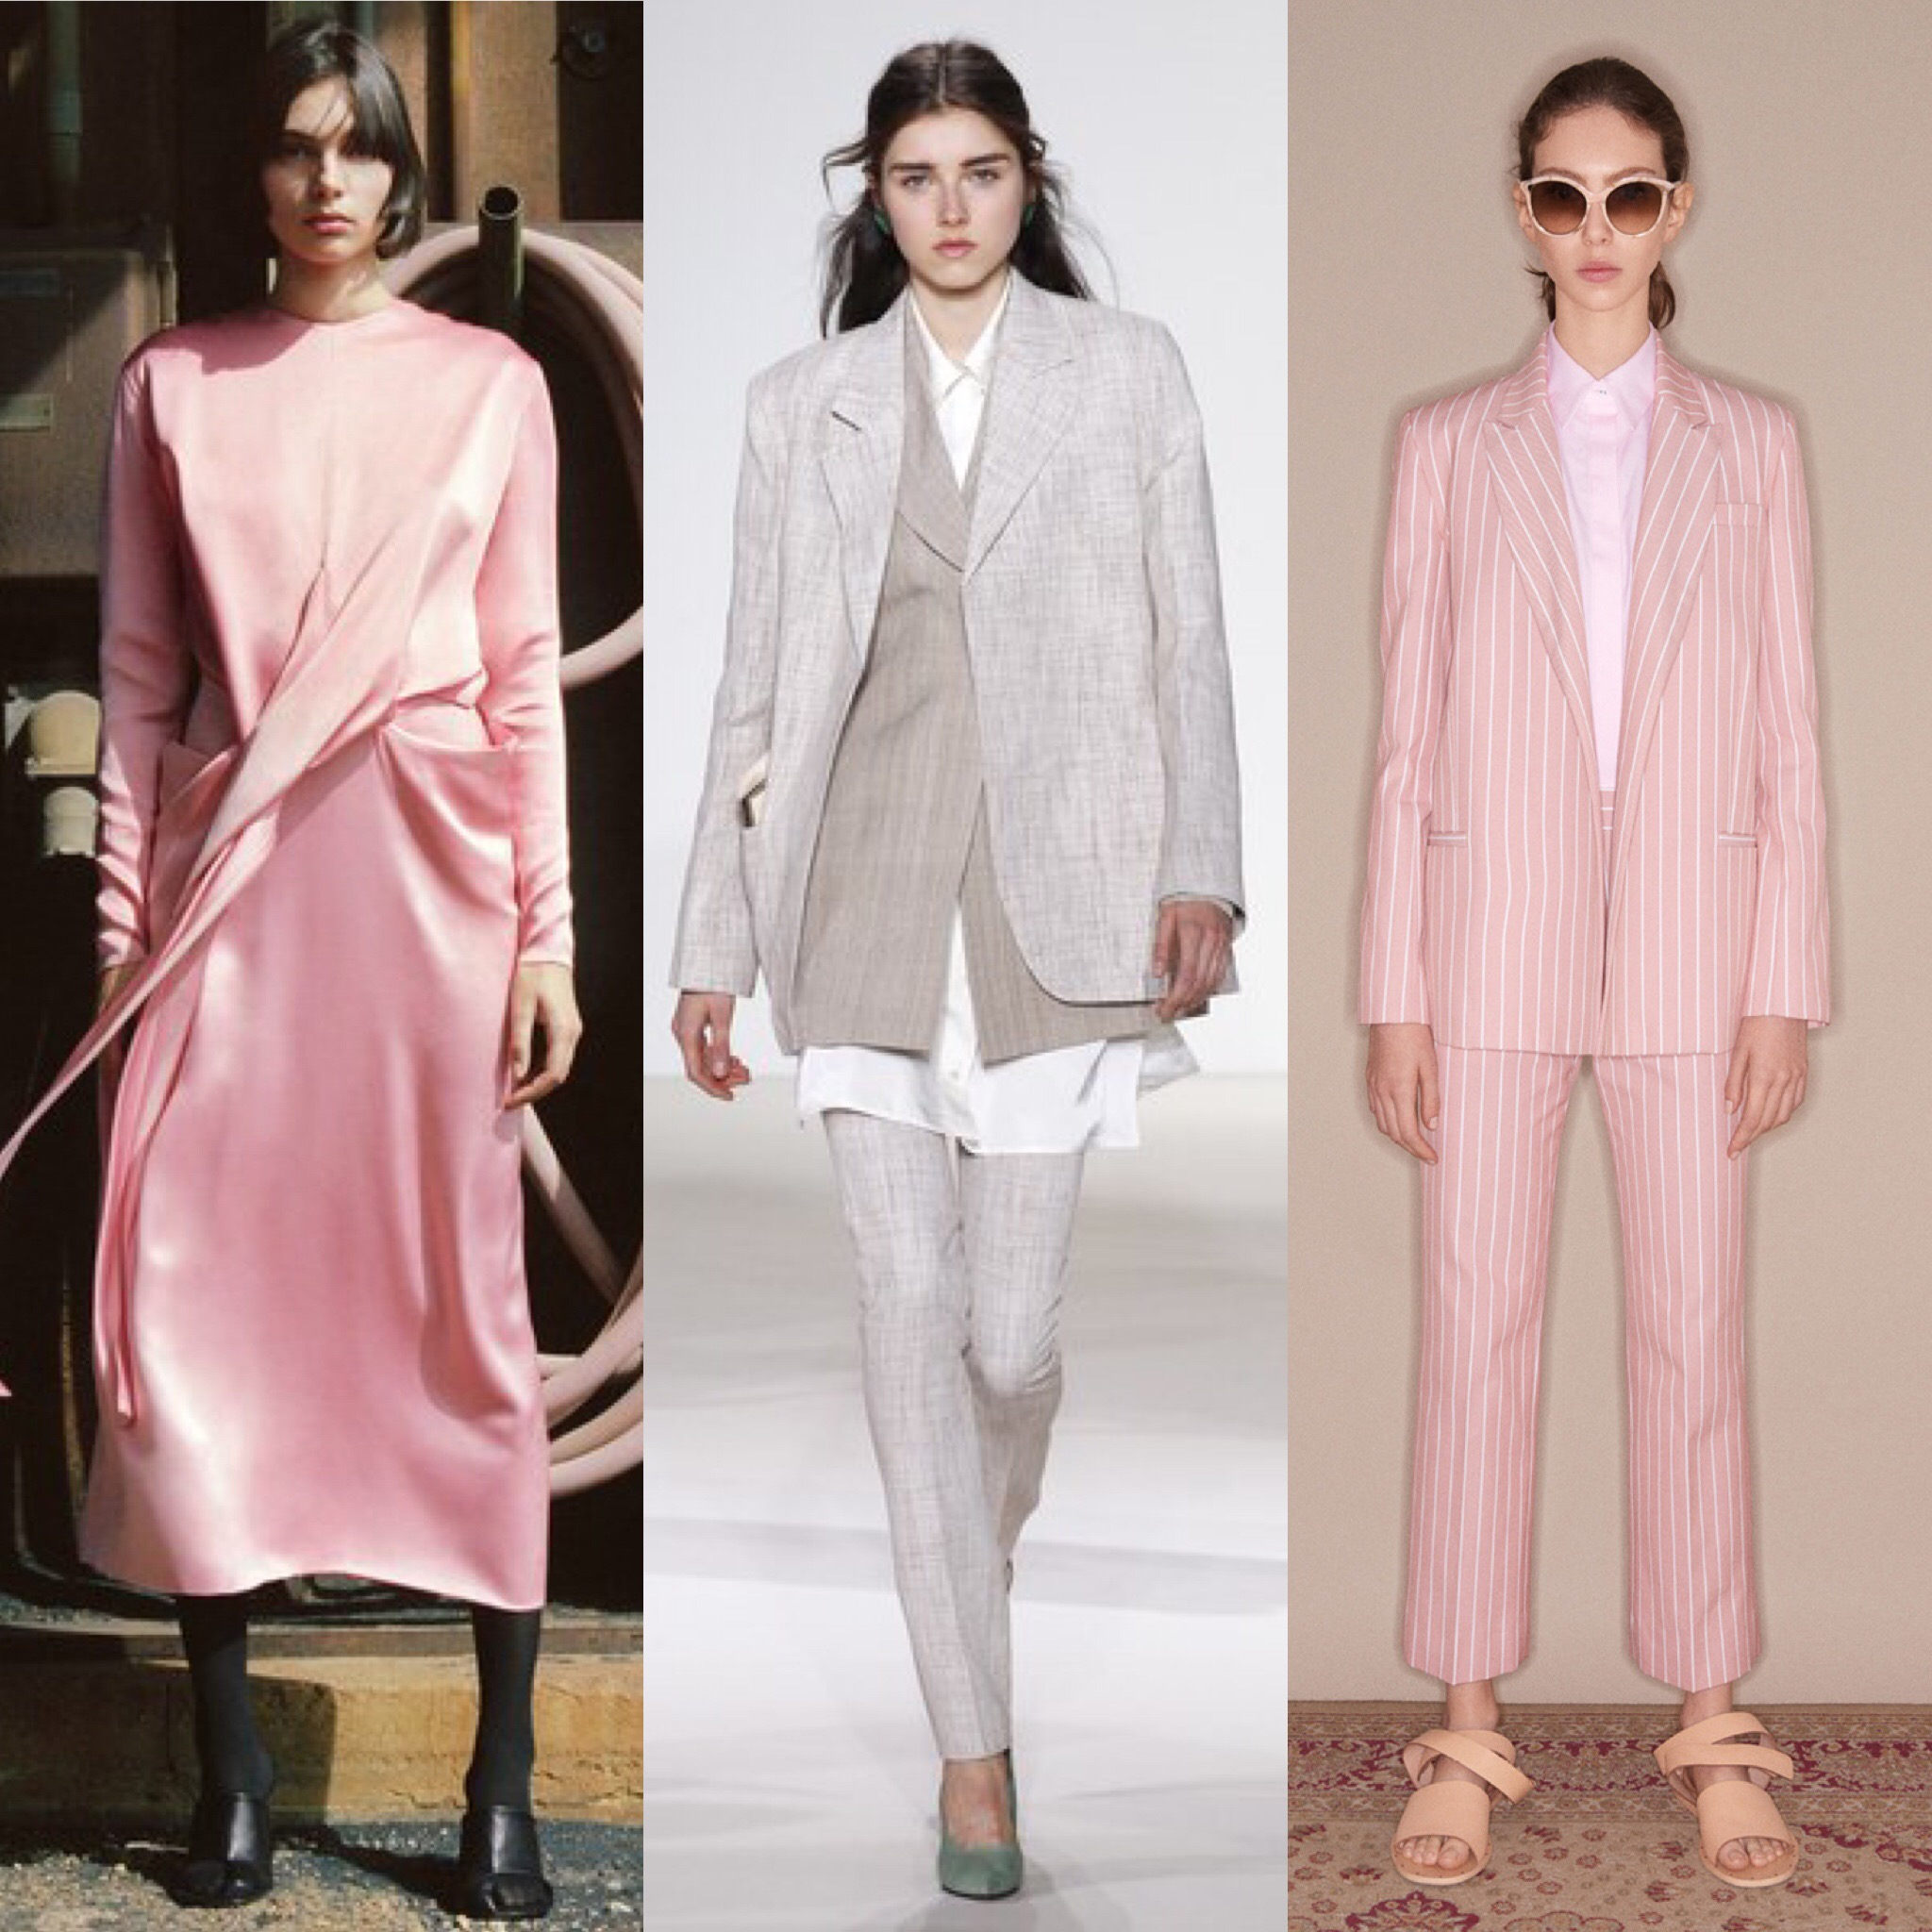 FROM L to R: Celine Fall '17, Victoria Beckham Spring '18 Runway, Victoria Beckham Spring '18 Editorial.